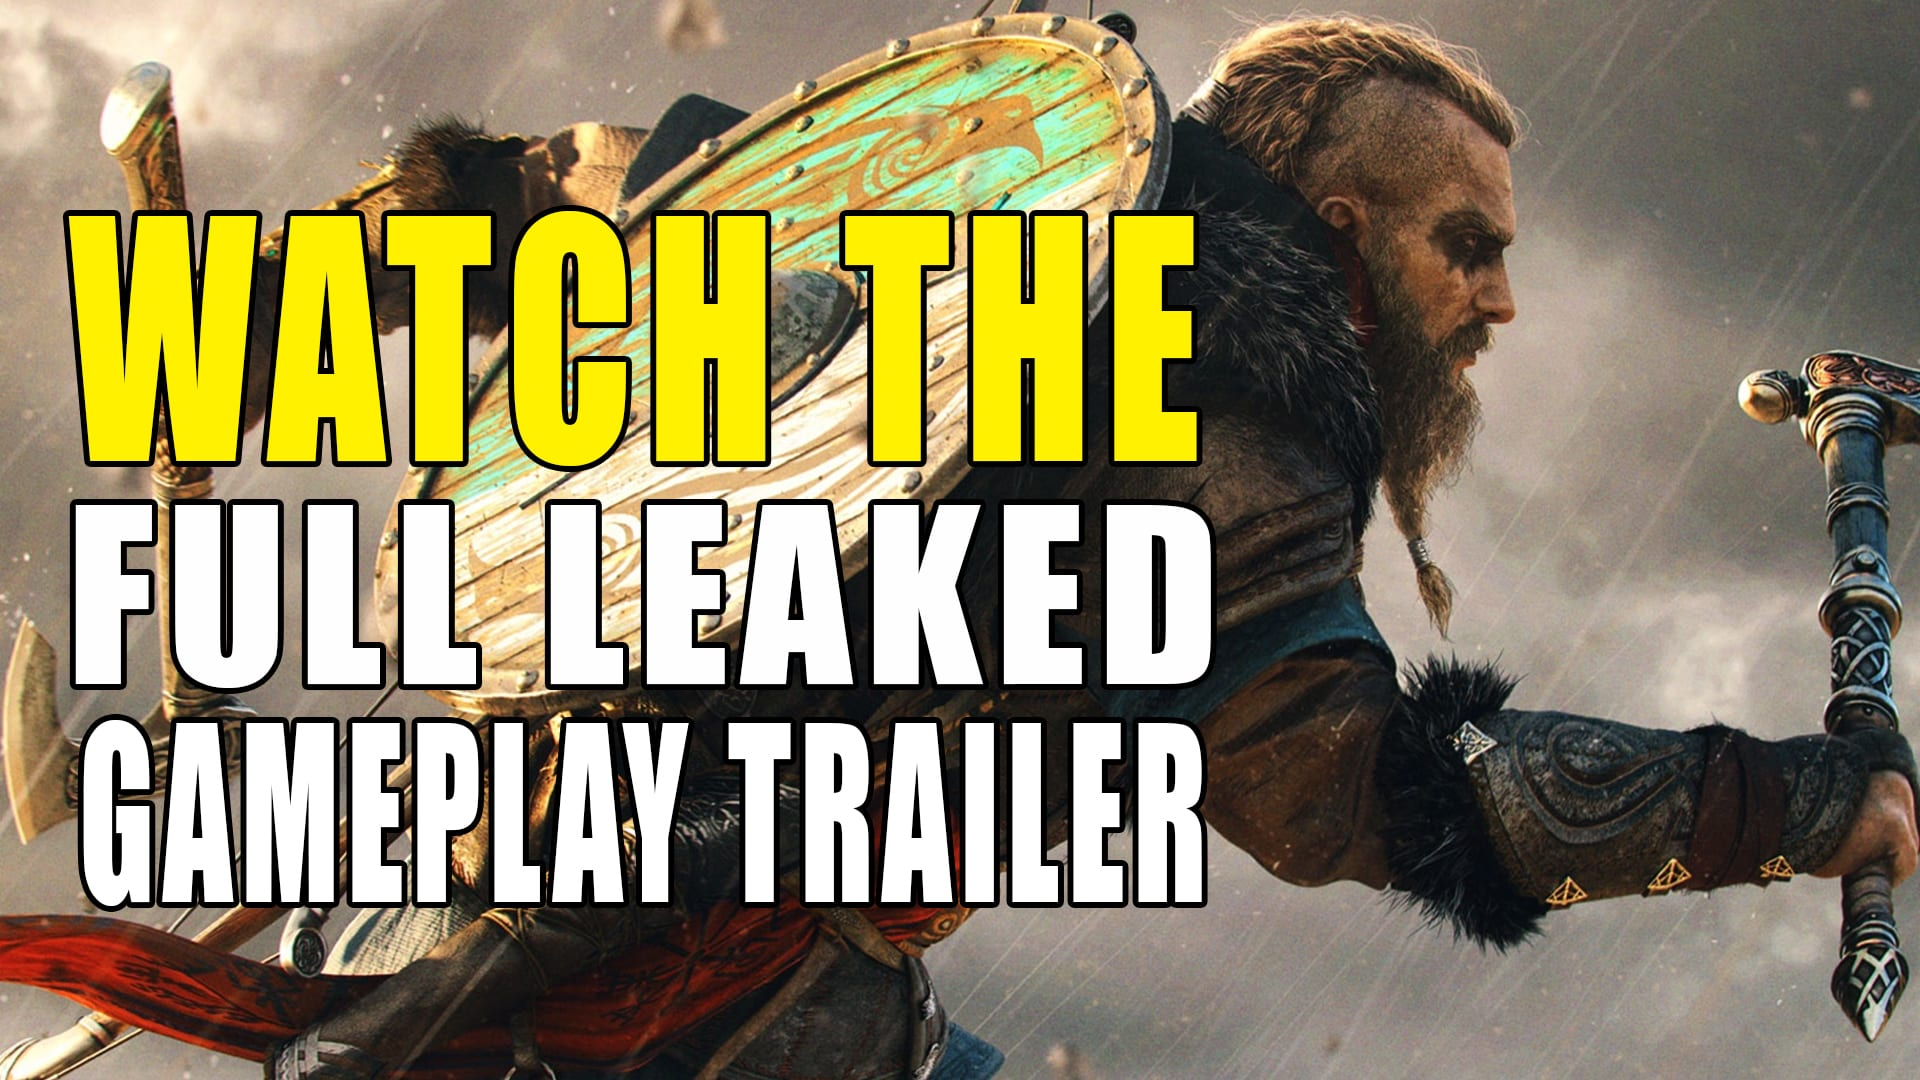 Full Assassin S Creed Valhalla Leaked Gameplay Trailer Gameclubz